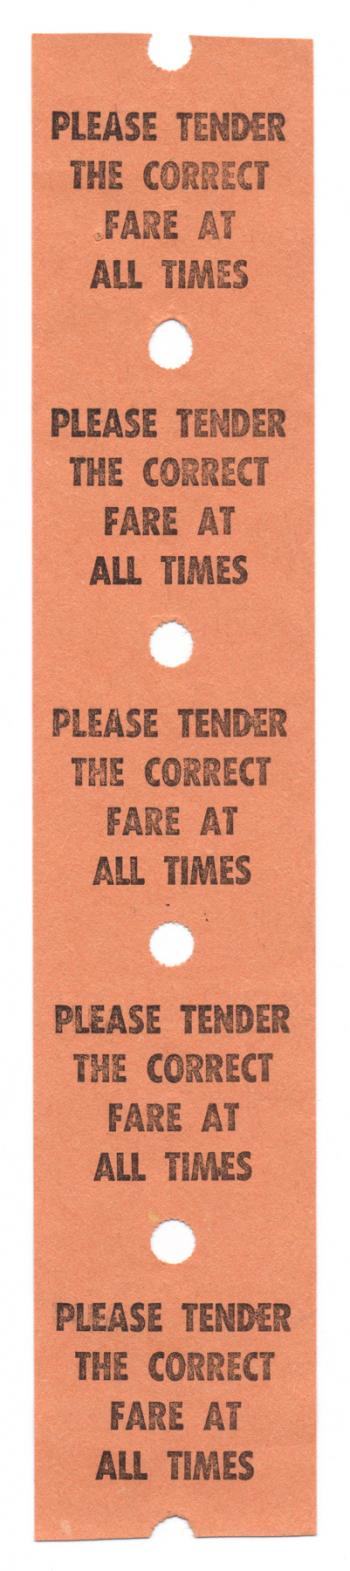 Vintage Fare Ticket x5